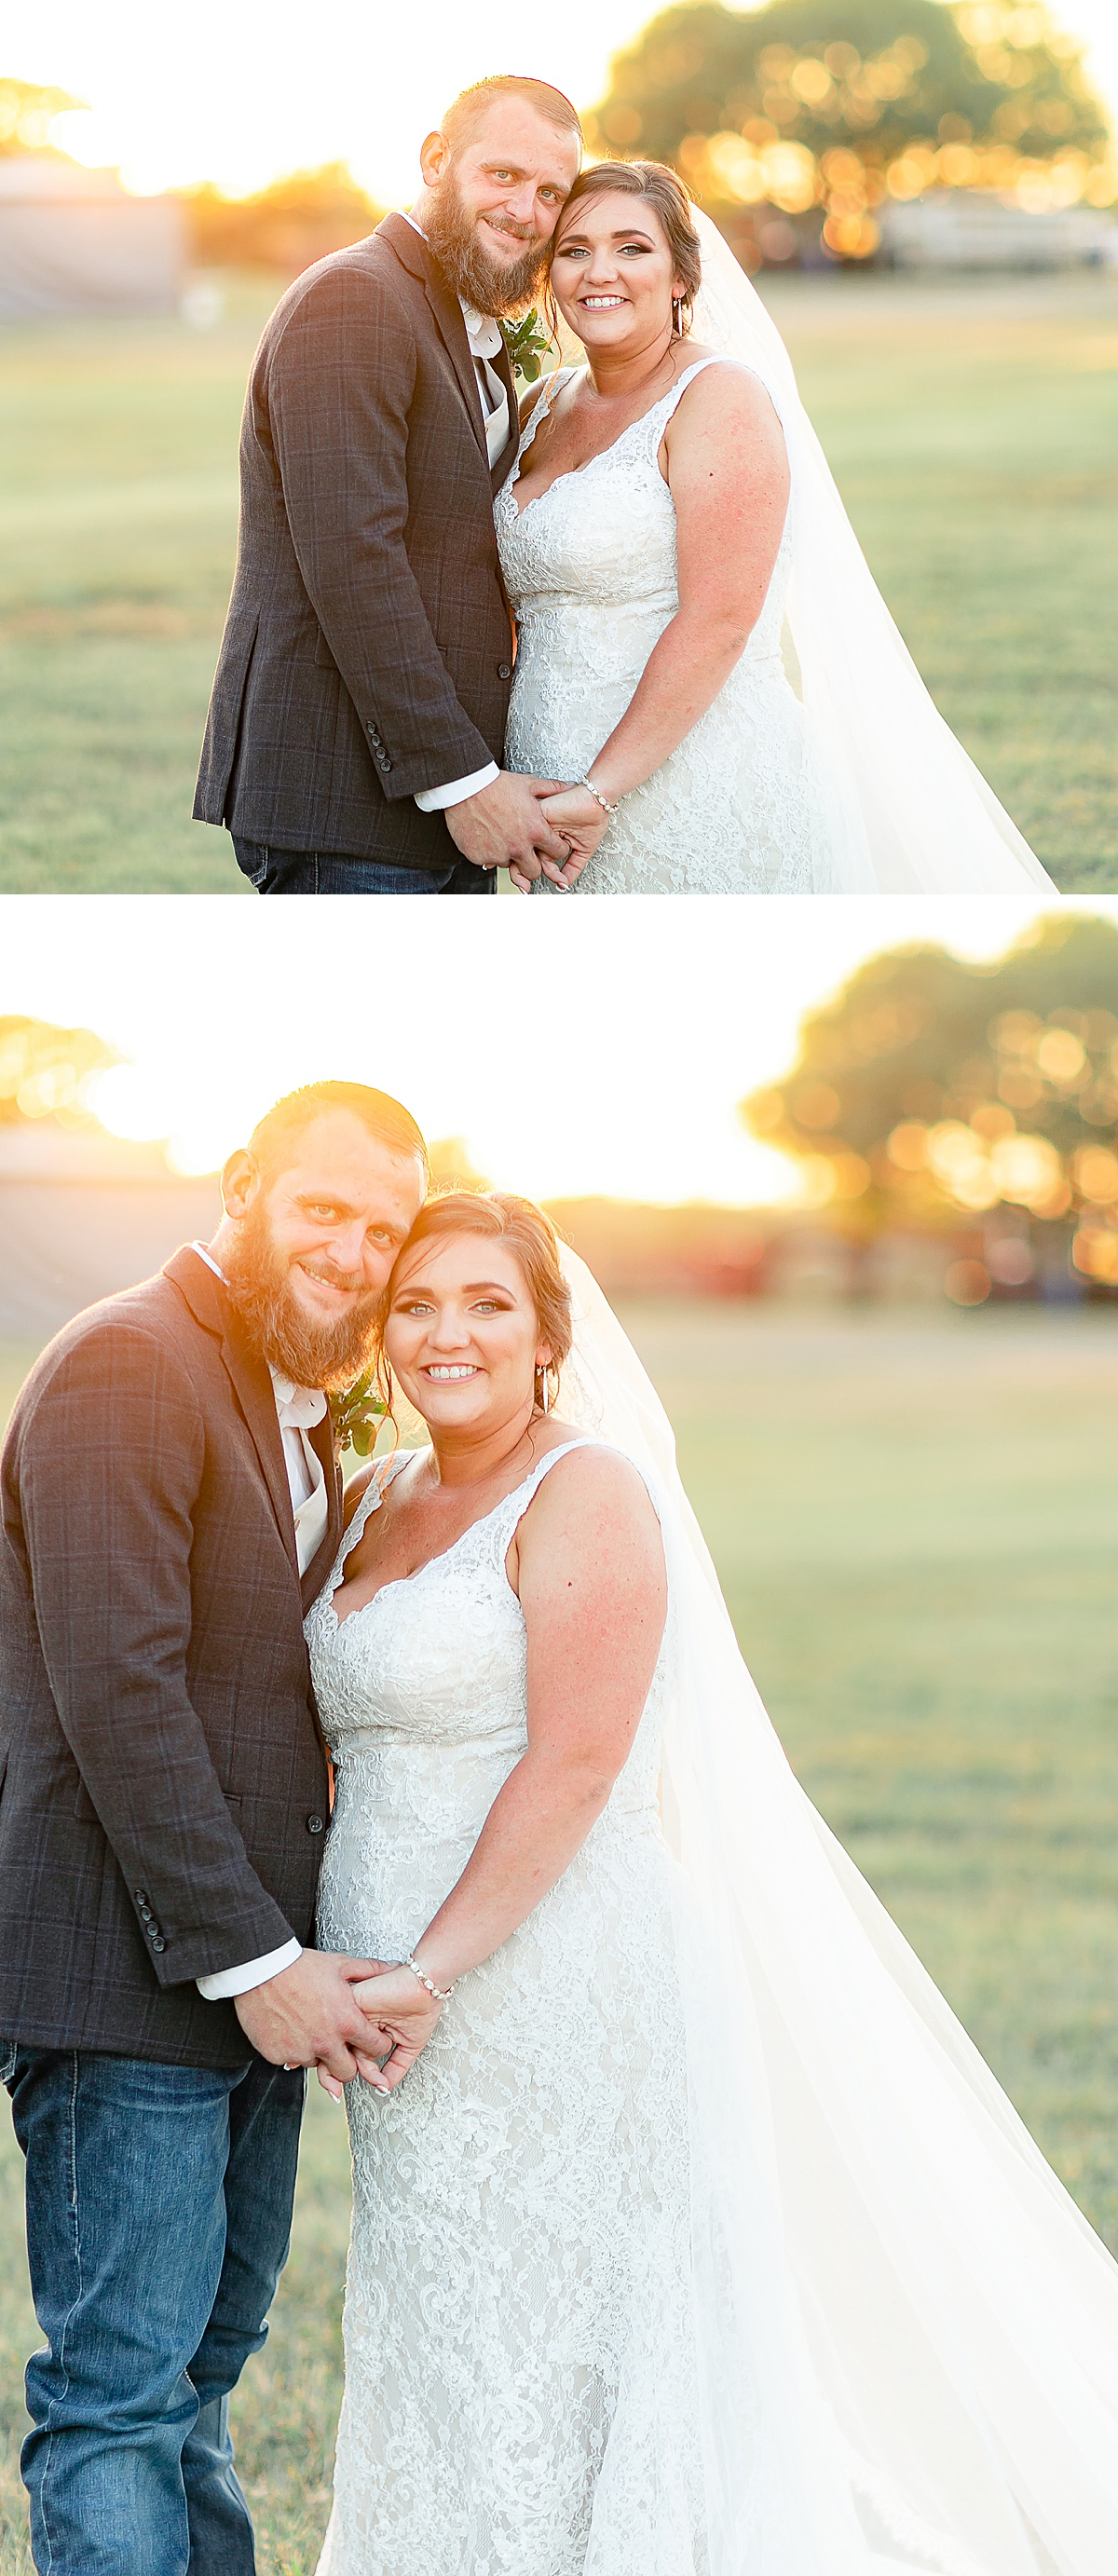 Rustic-Texas-Wedding-Hollow-Creek-Ranch-Carly-Barton-Photography_0081.jpg